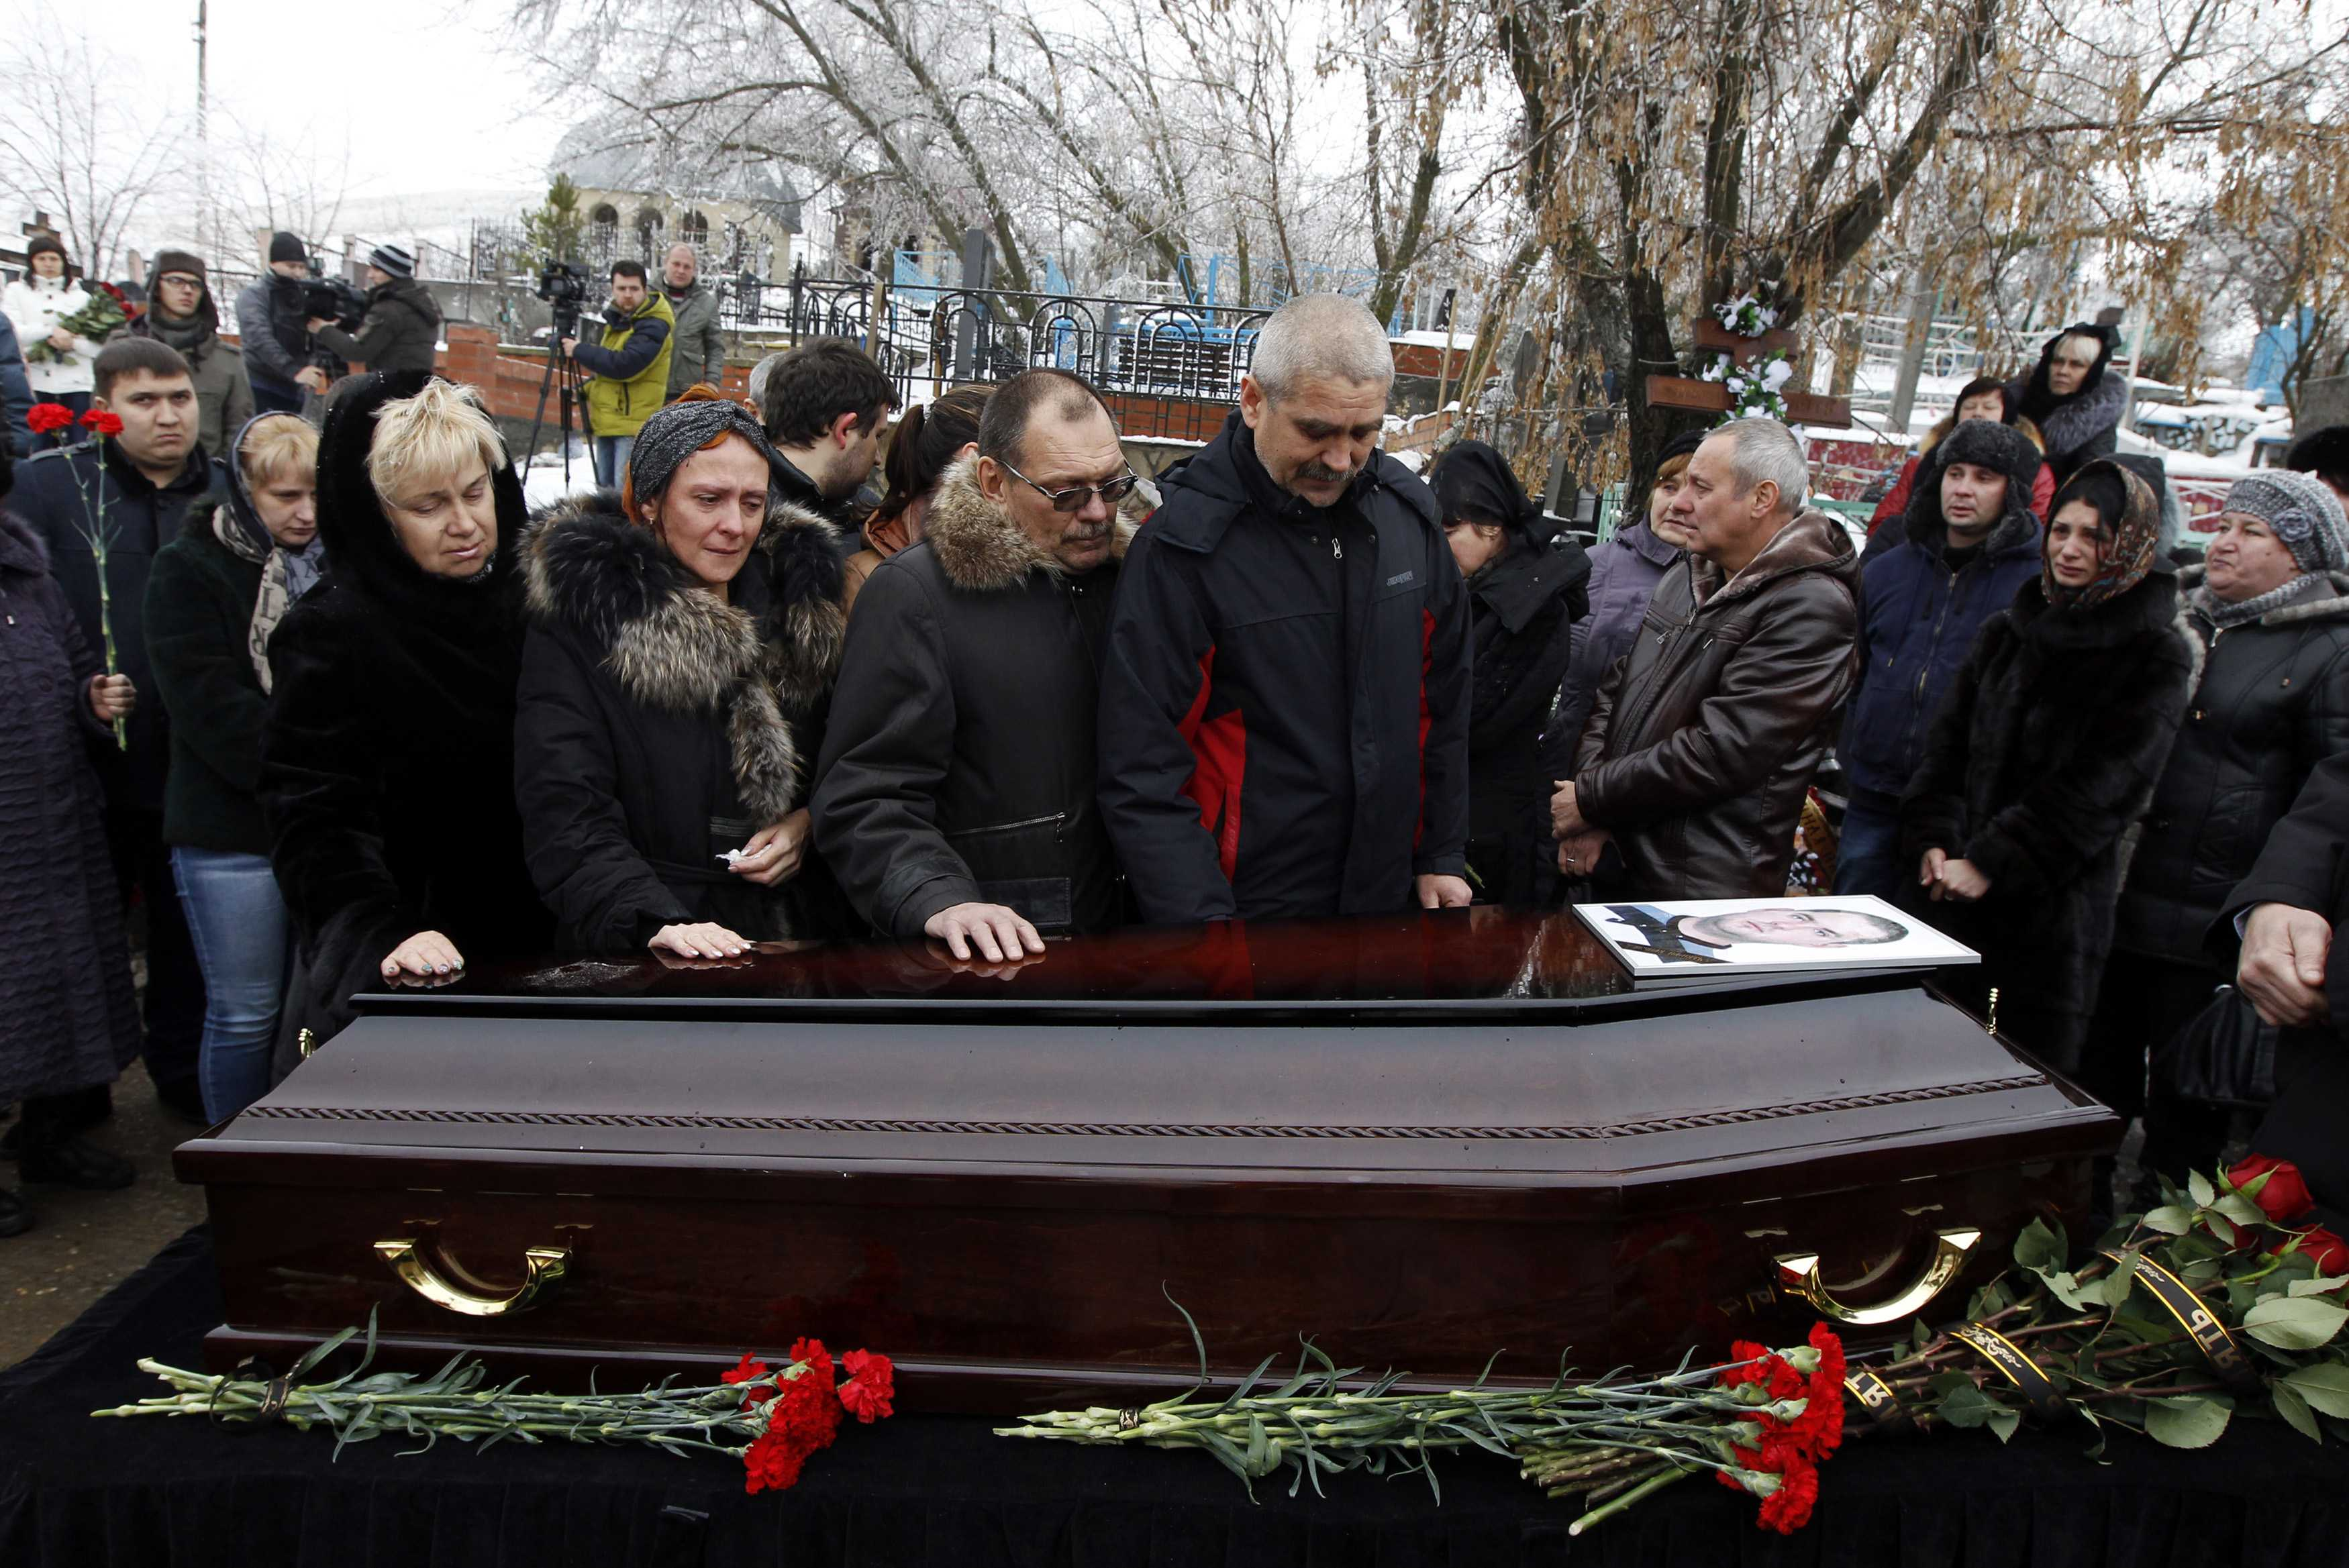 Relatives gather around the coffin of a victim of an explosion at a funeral in Volgograd